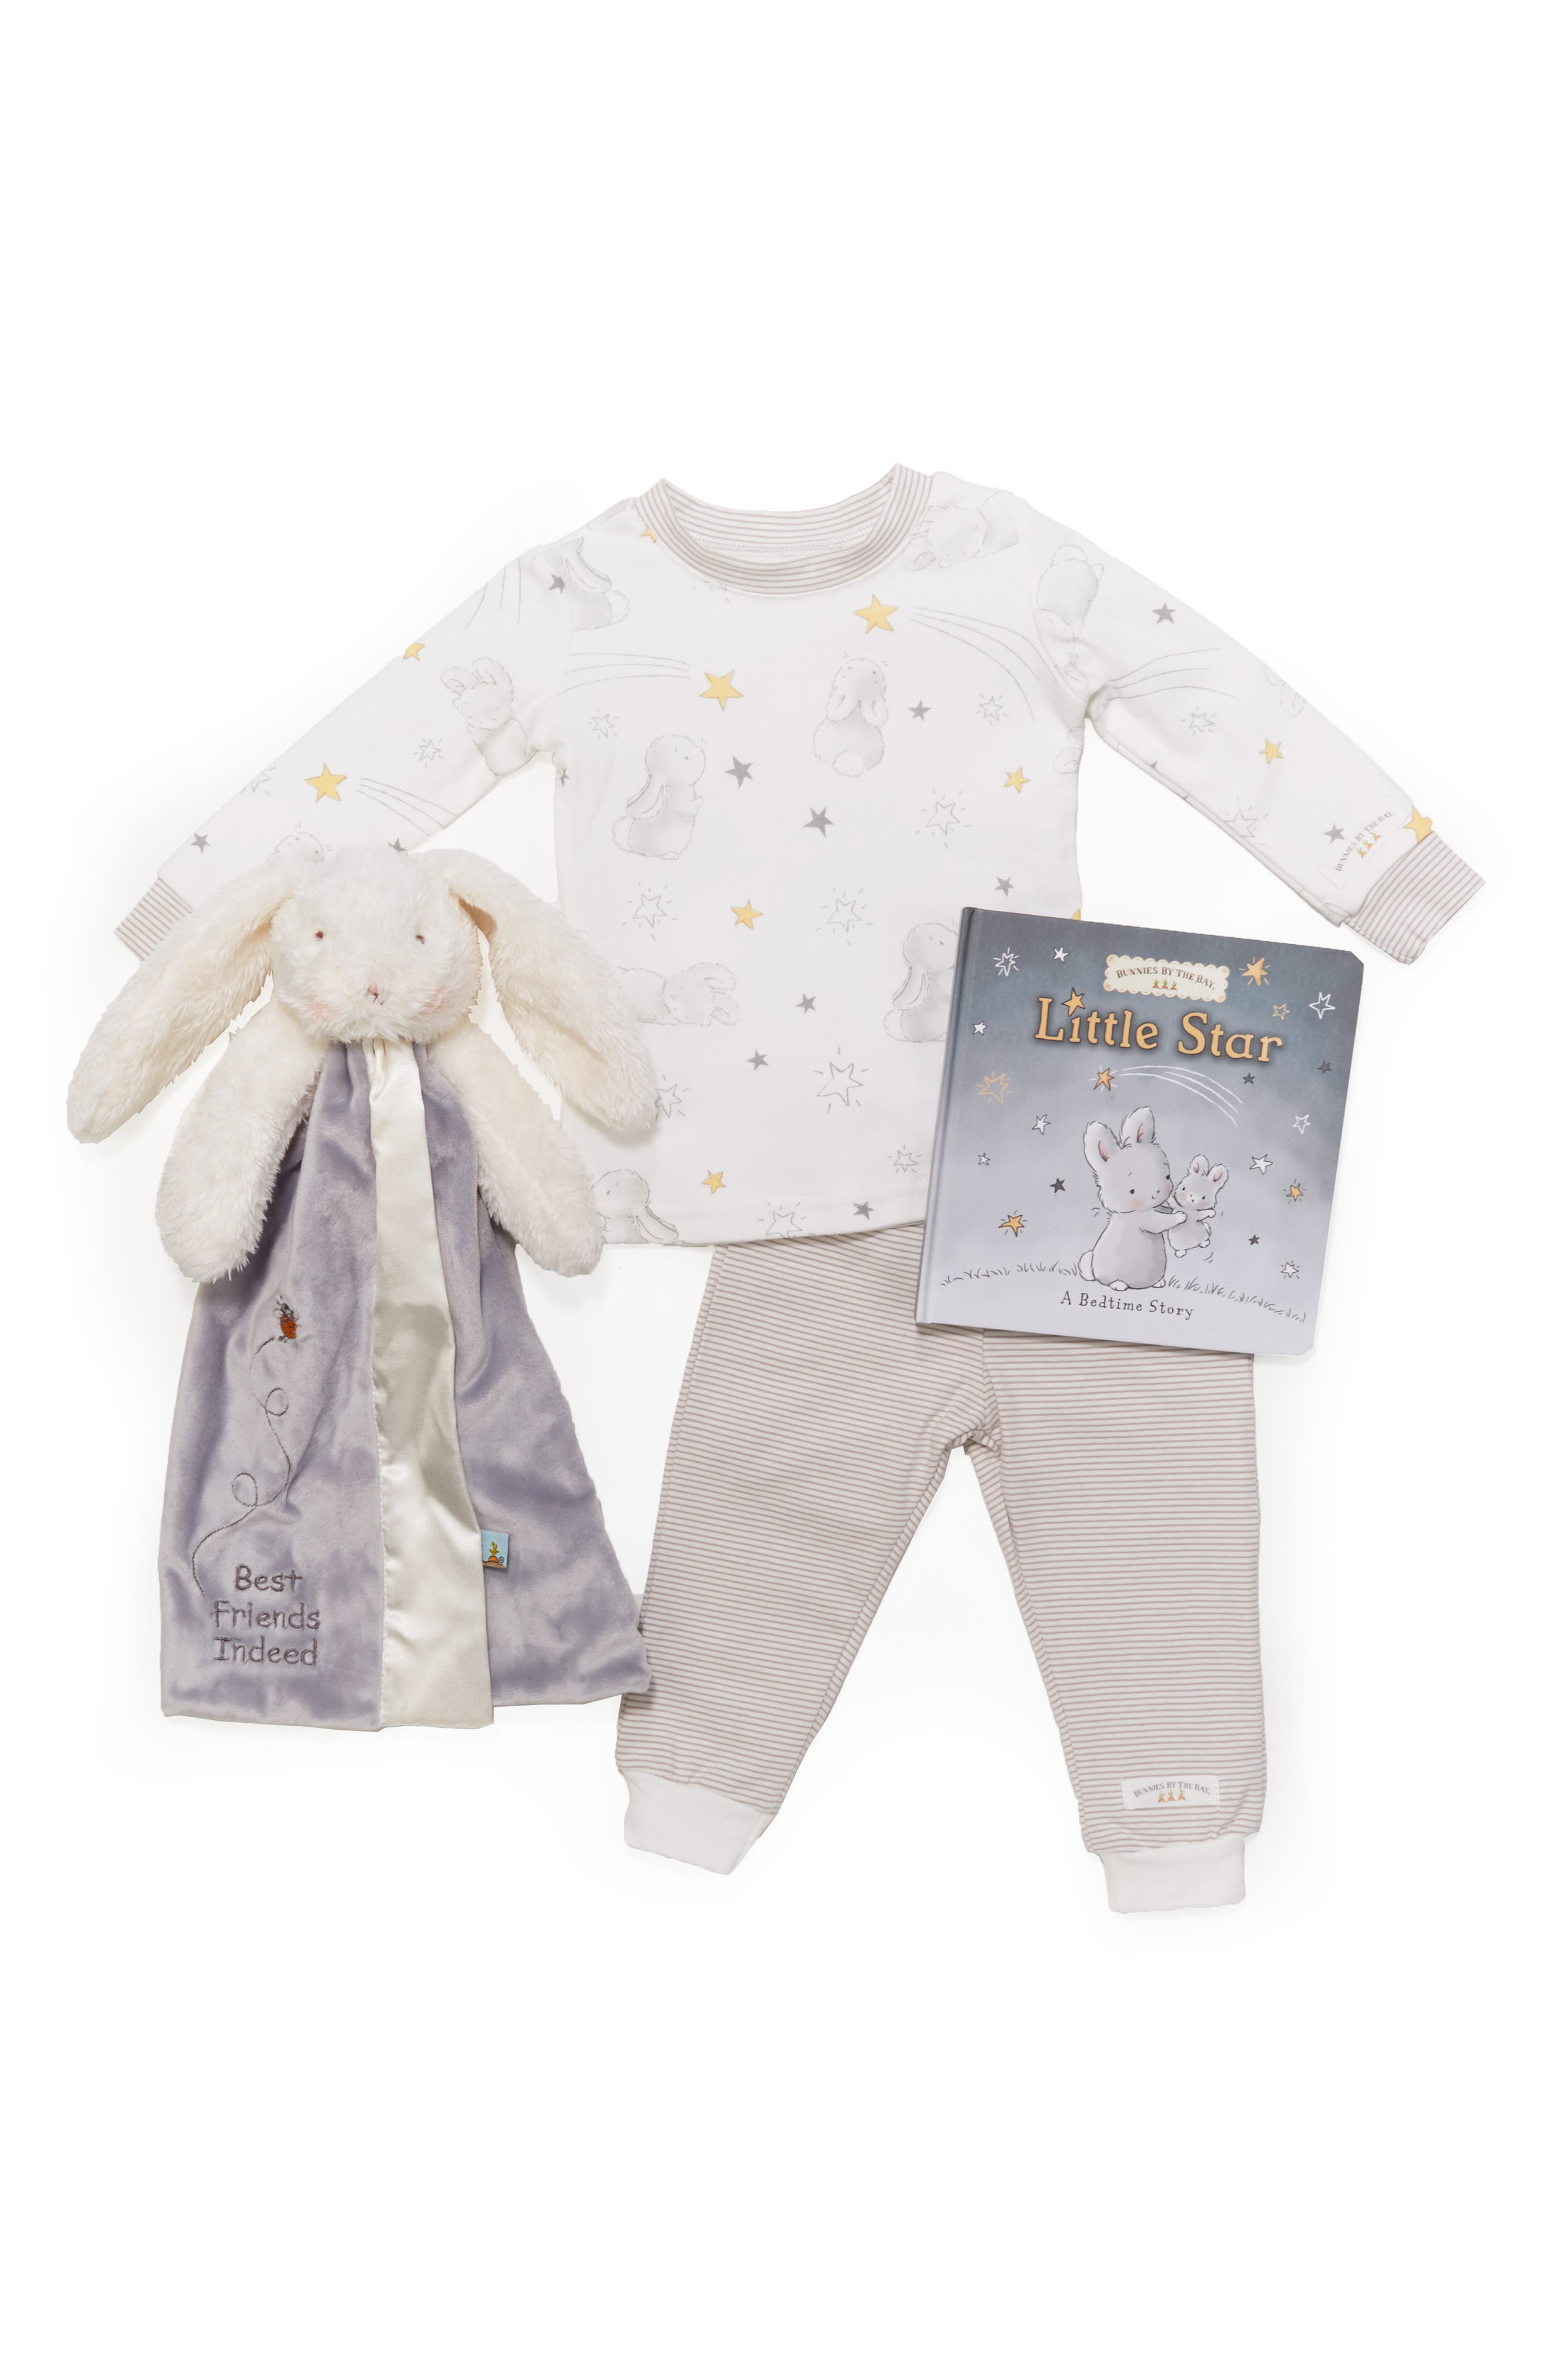 BUNNIES BY THE BAY,                             Twinkle Sleepy Baby Fitted Pajamas, Animal Buddy Blanket & Board Book Set,                             Alternate thumbnail 2, color,                             GREY